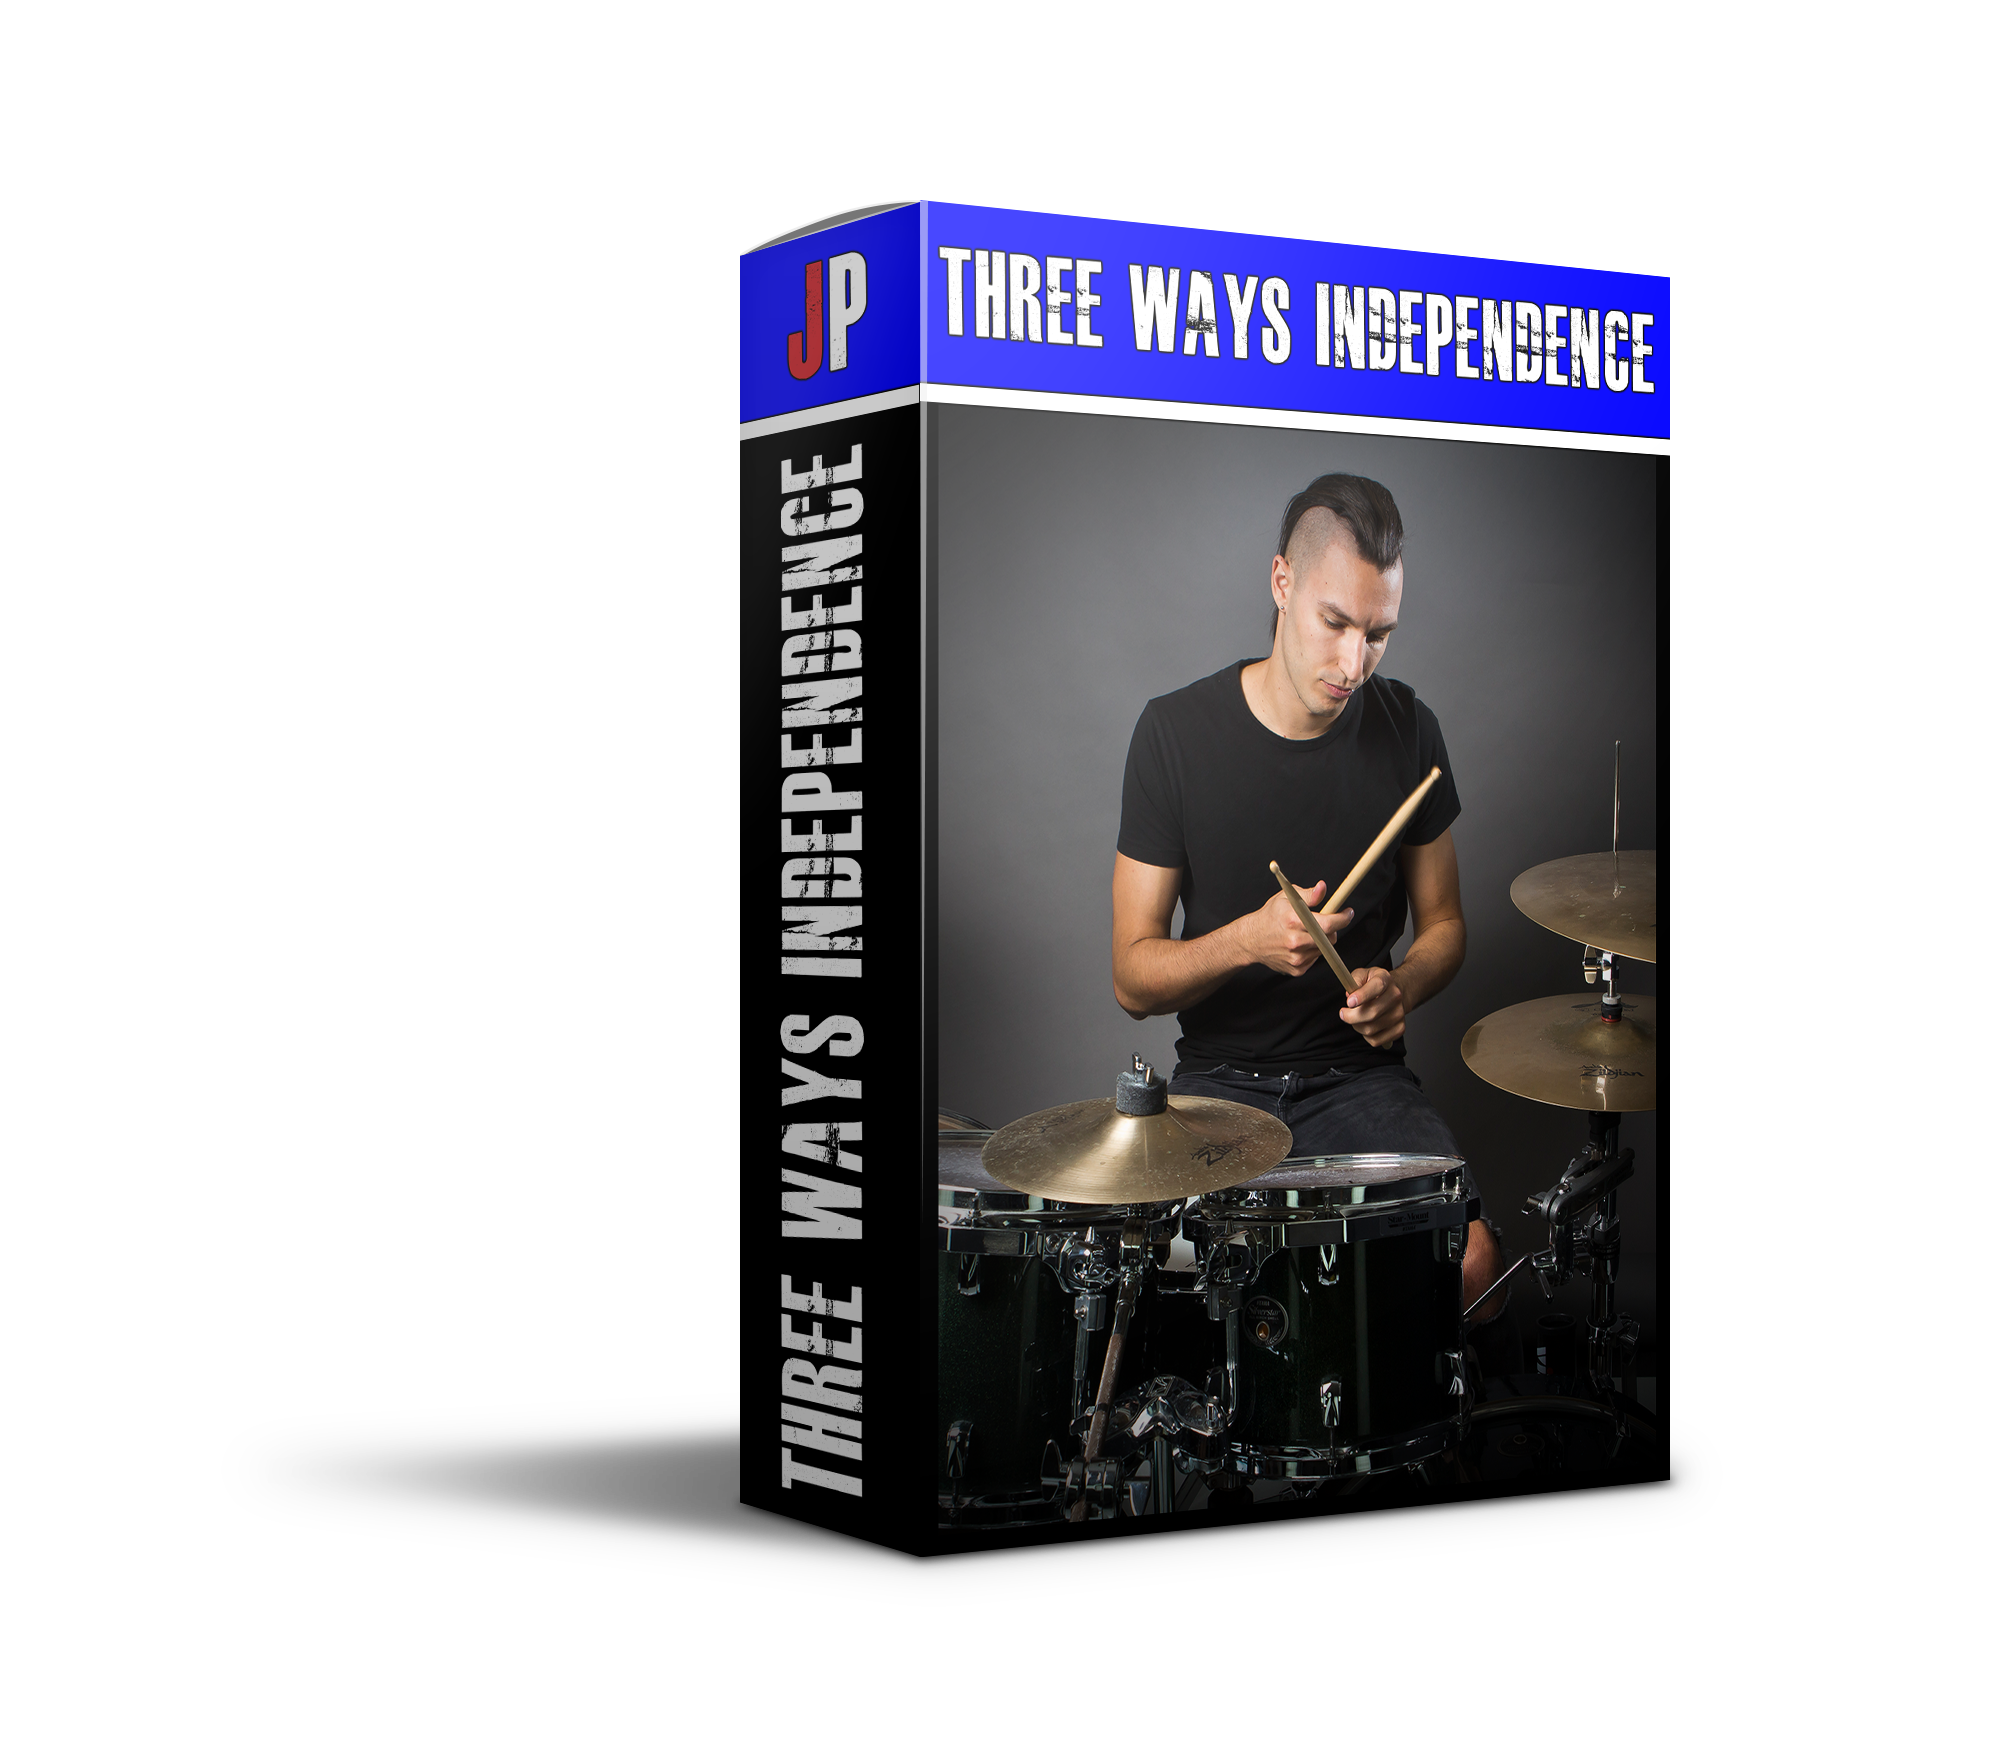 Three Ways Independence course image